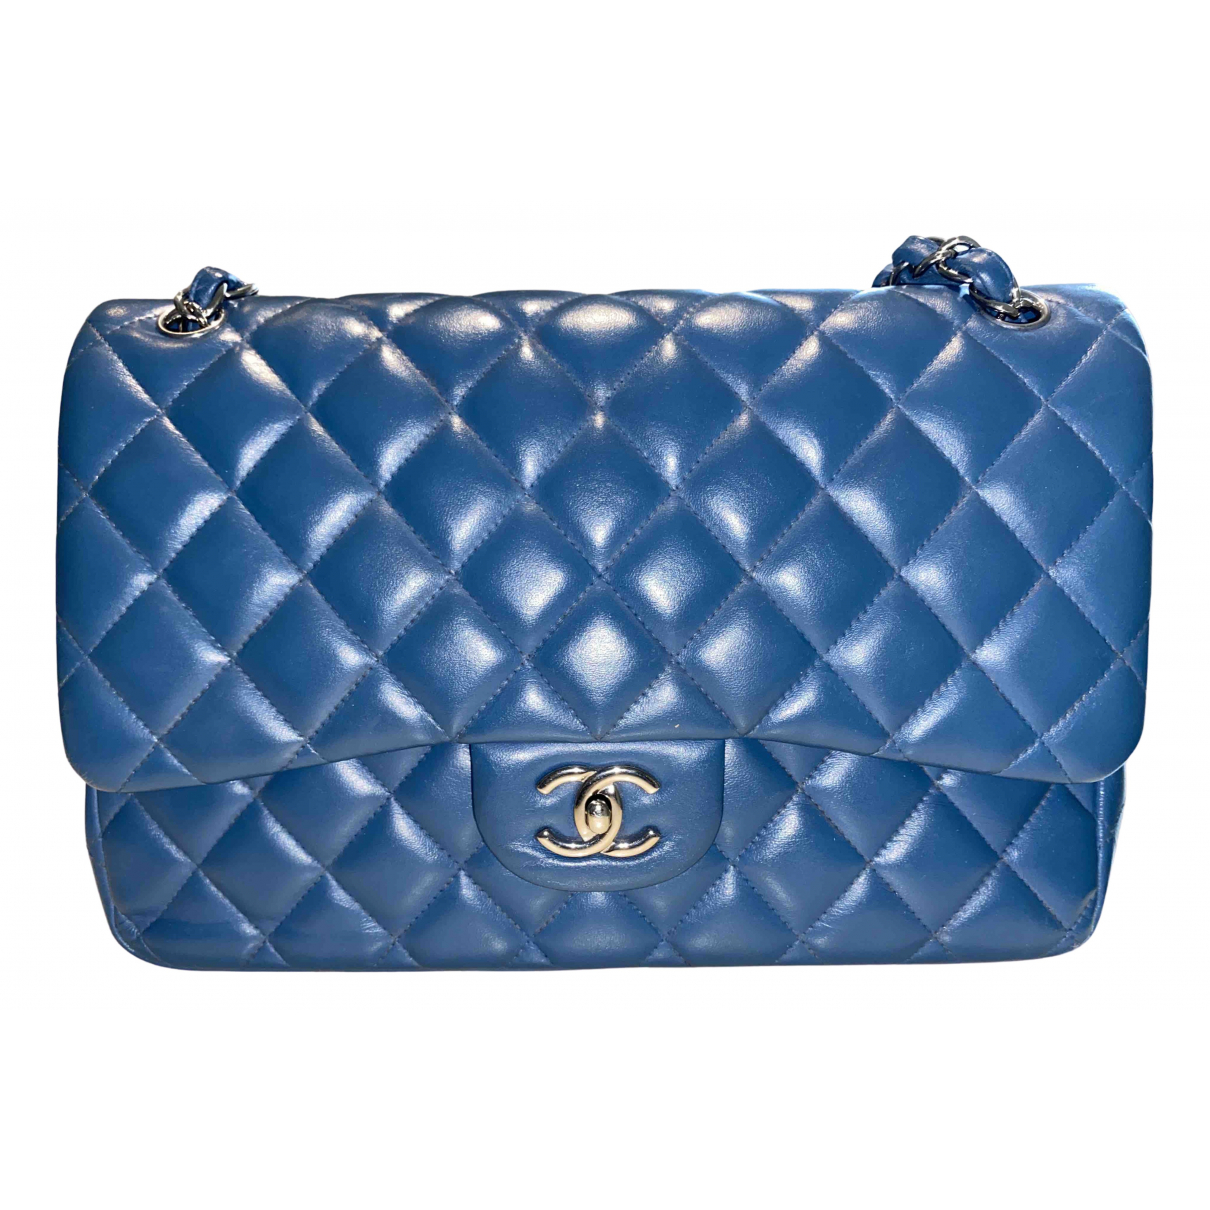 Chanel Timeless/Classique Green Patent leather handbag for Women \N